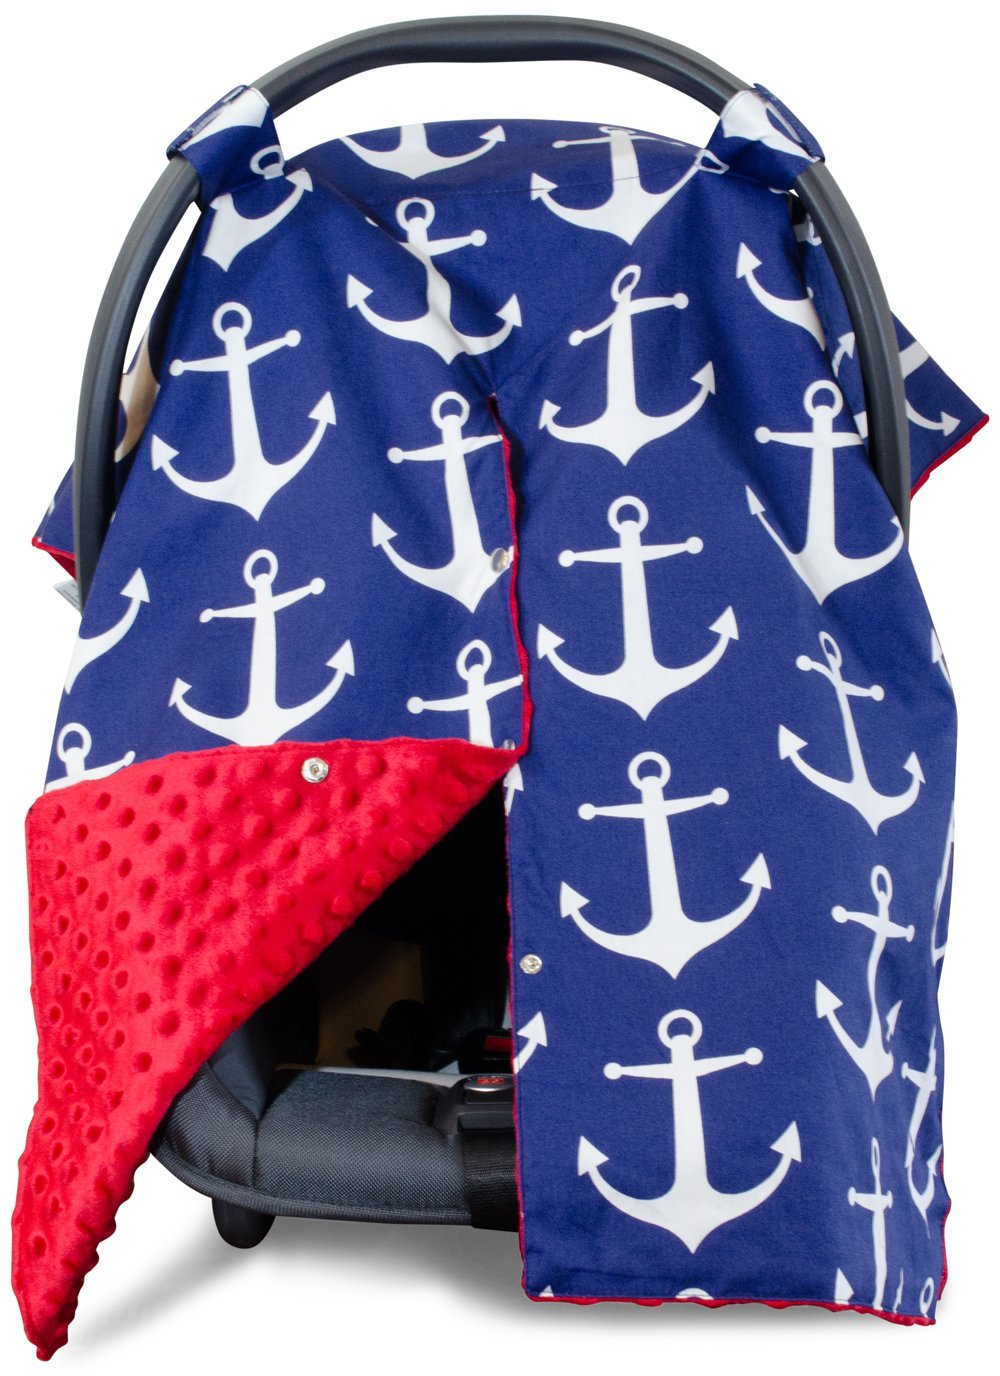 2 In 1 Carseat Canopy And Nursing Cover Up With Peekaboo Opening